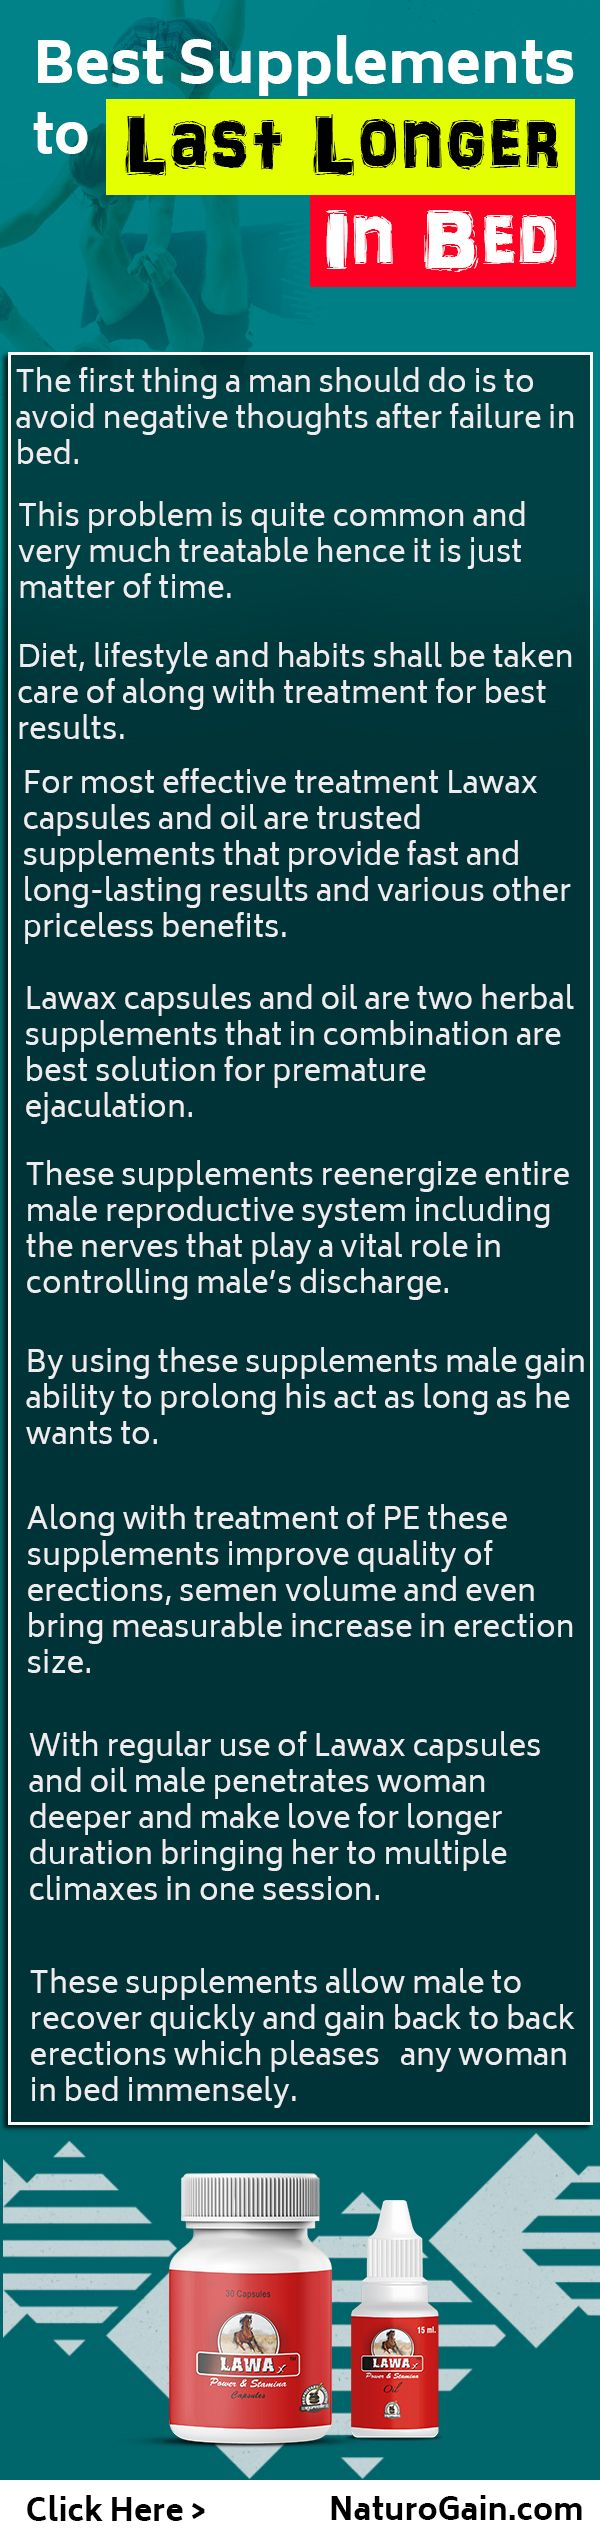 In this infographic, Know about natural supplements to